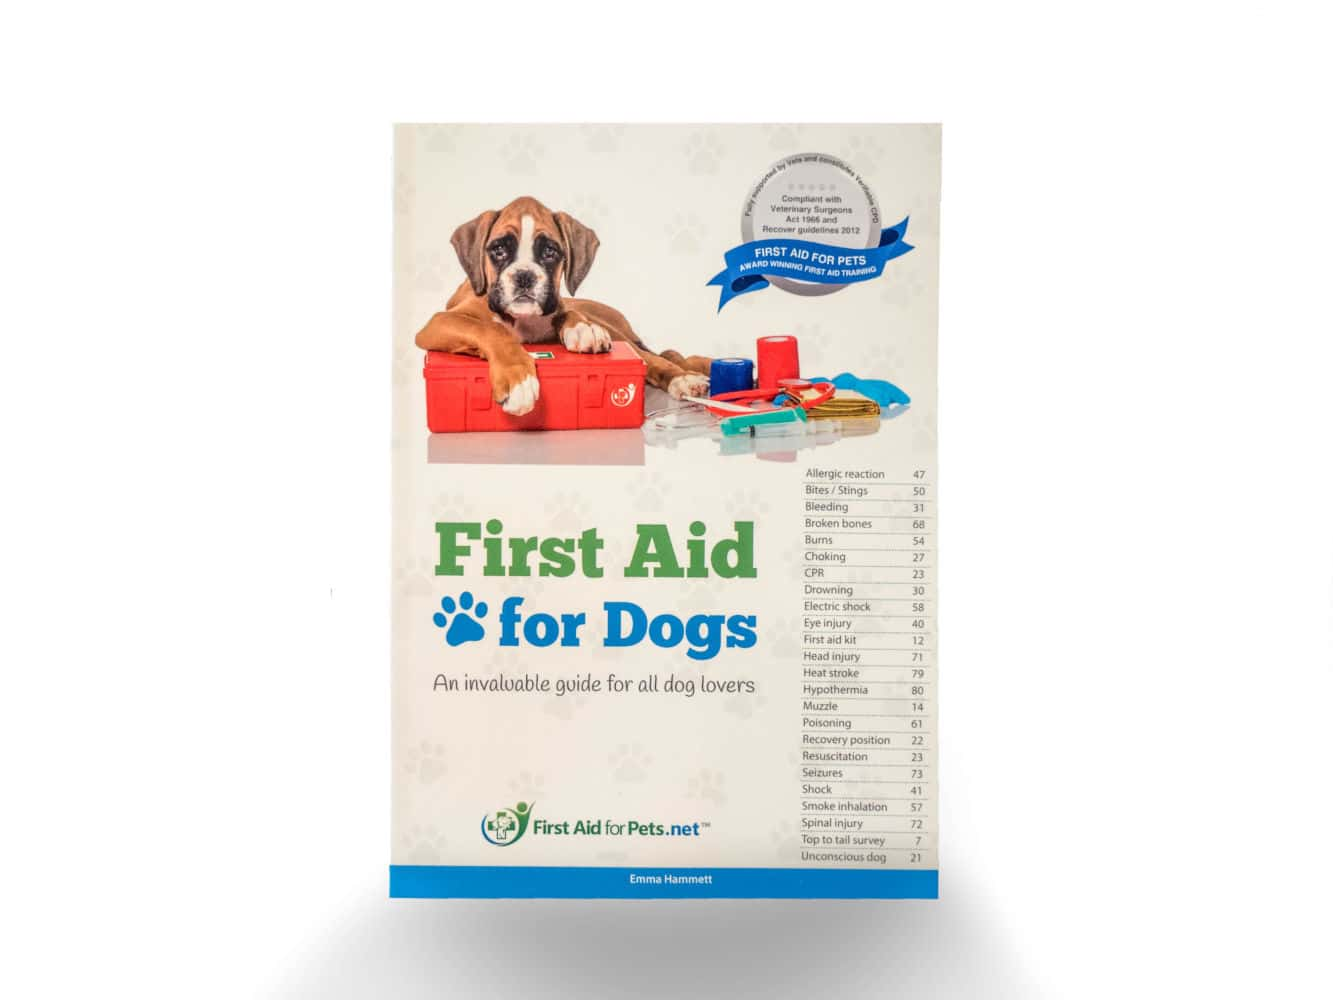 First Aid for Dogs by Emma Hammett